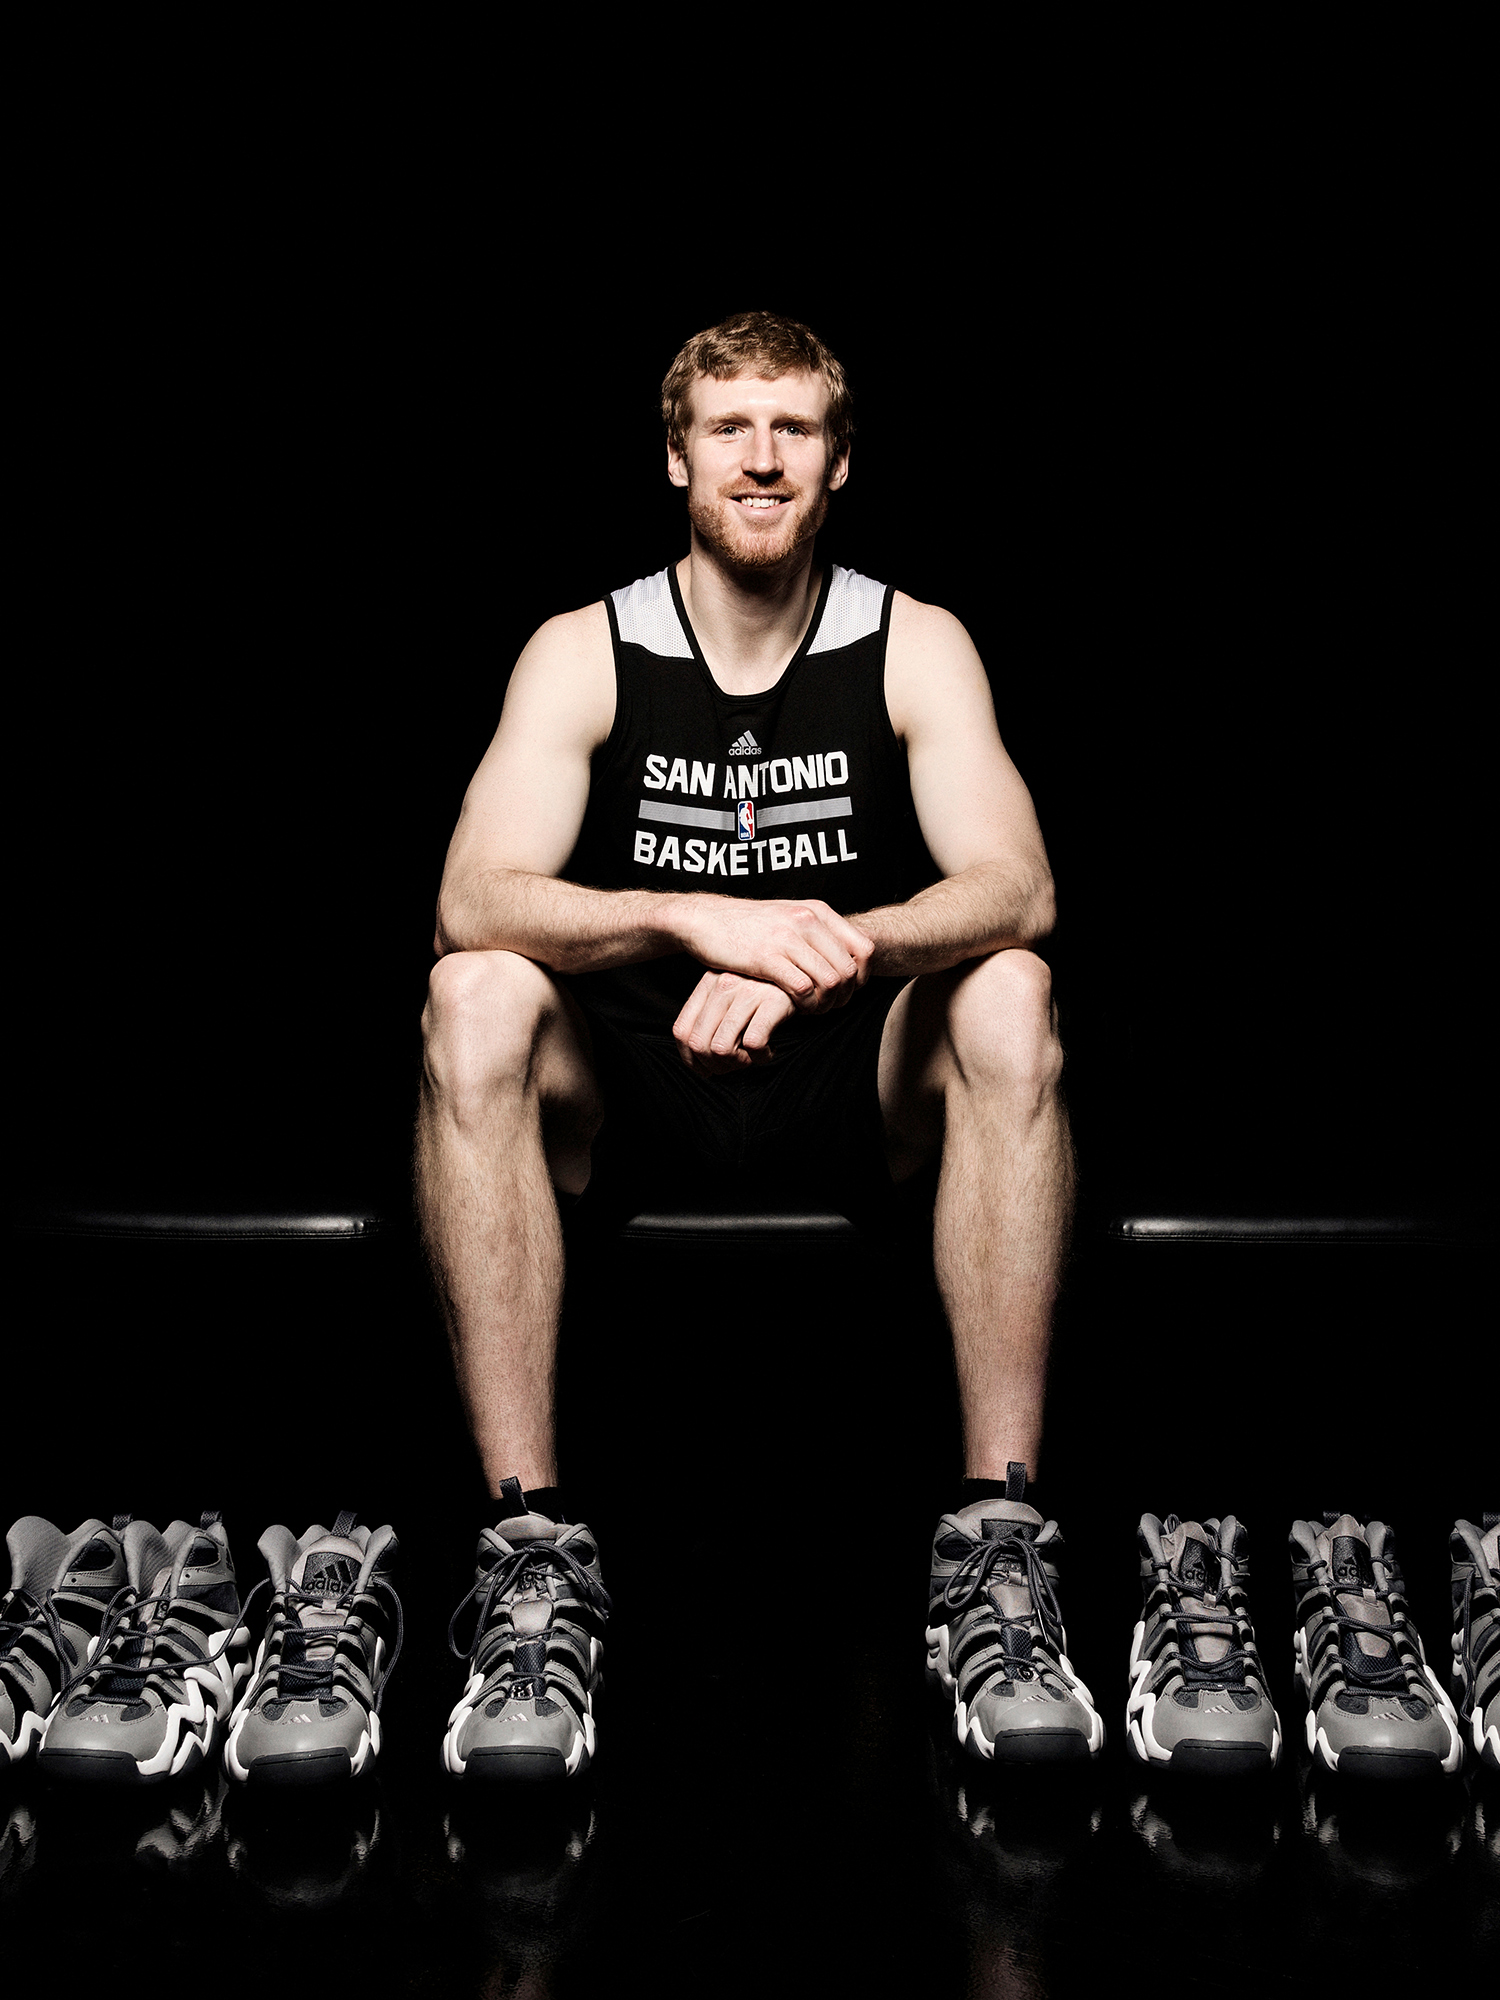 Matt Bonner, San Antonio Spurs NBA basketball player, photographed at the Spurs training facility in San Antonio, Texas for ESPN The Magazine by Houston sports photographer, Todd Spoth.